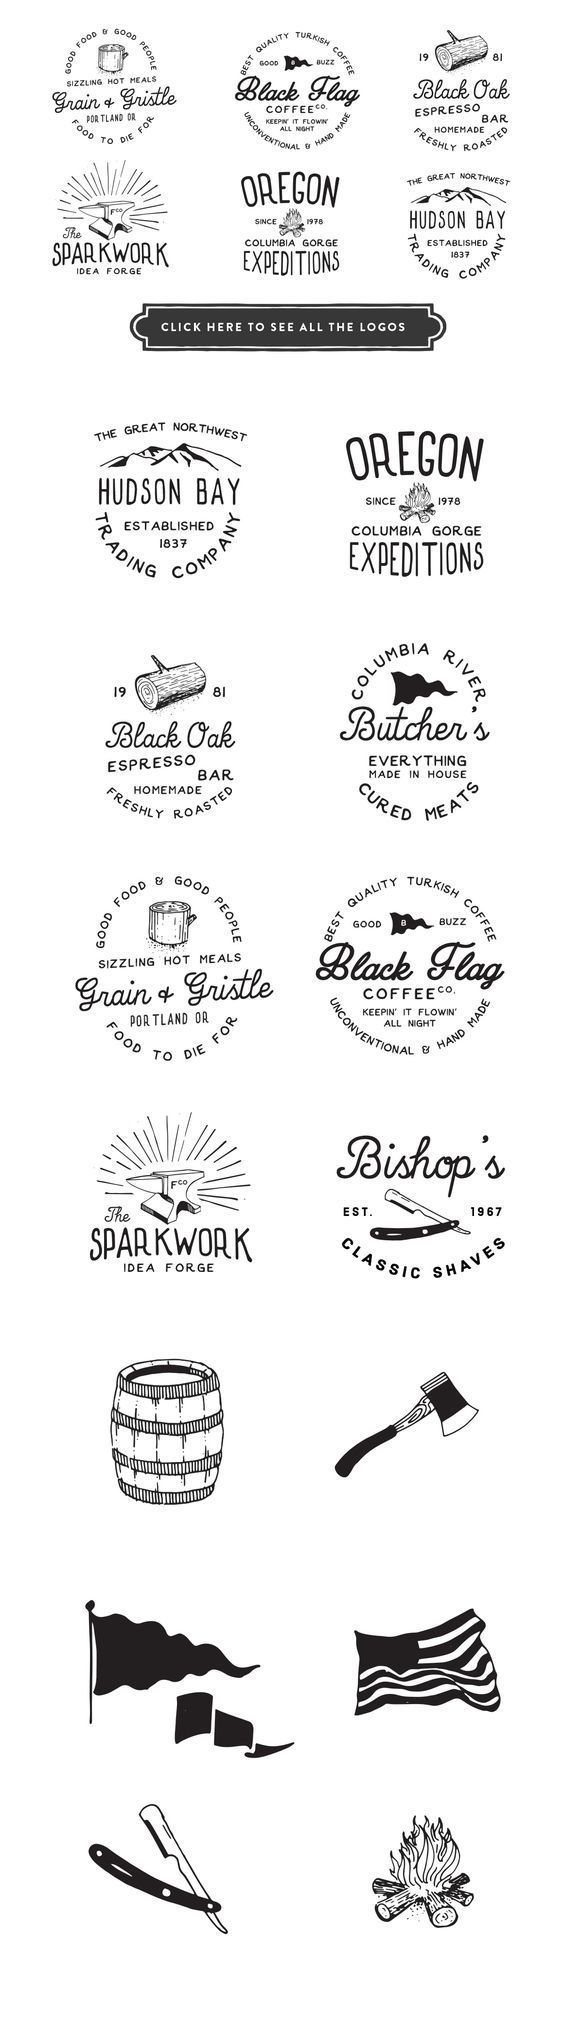 Vintage Branding Kit - This is easily the most valuable package I've ever put together. It's also the most highly discounted pack. The Vintage Rubber Stamp Smart PSD, Vintage Mock-Up Photos, Vintage Studio Photos or Hand Drawn Logos could all easily sell individually for the price of the entire pack. By RetroSupply Co. $27 #brand #deisgn #affiliatelink